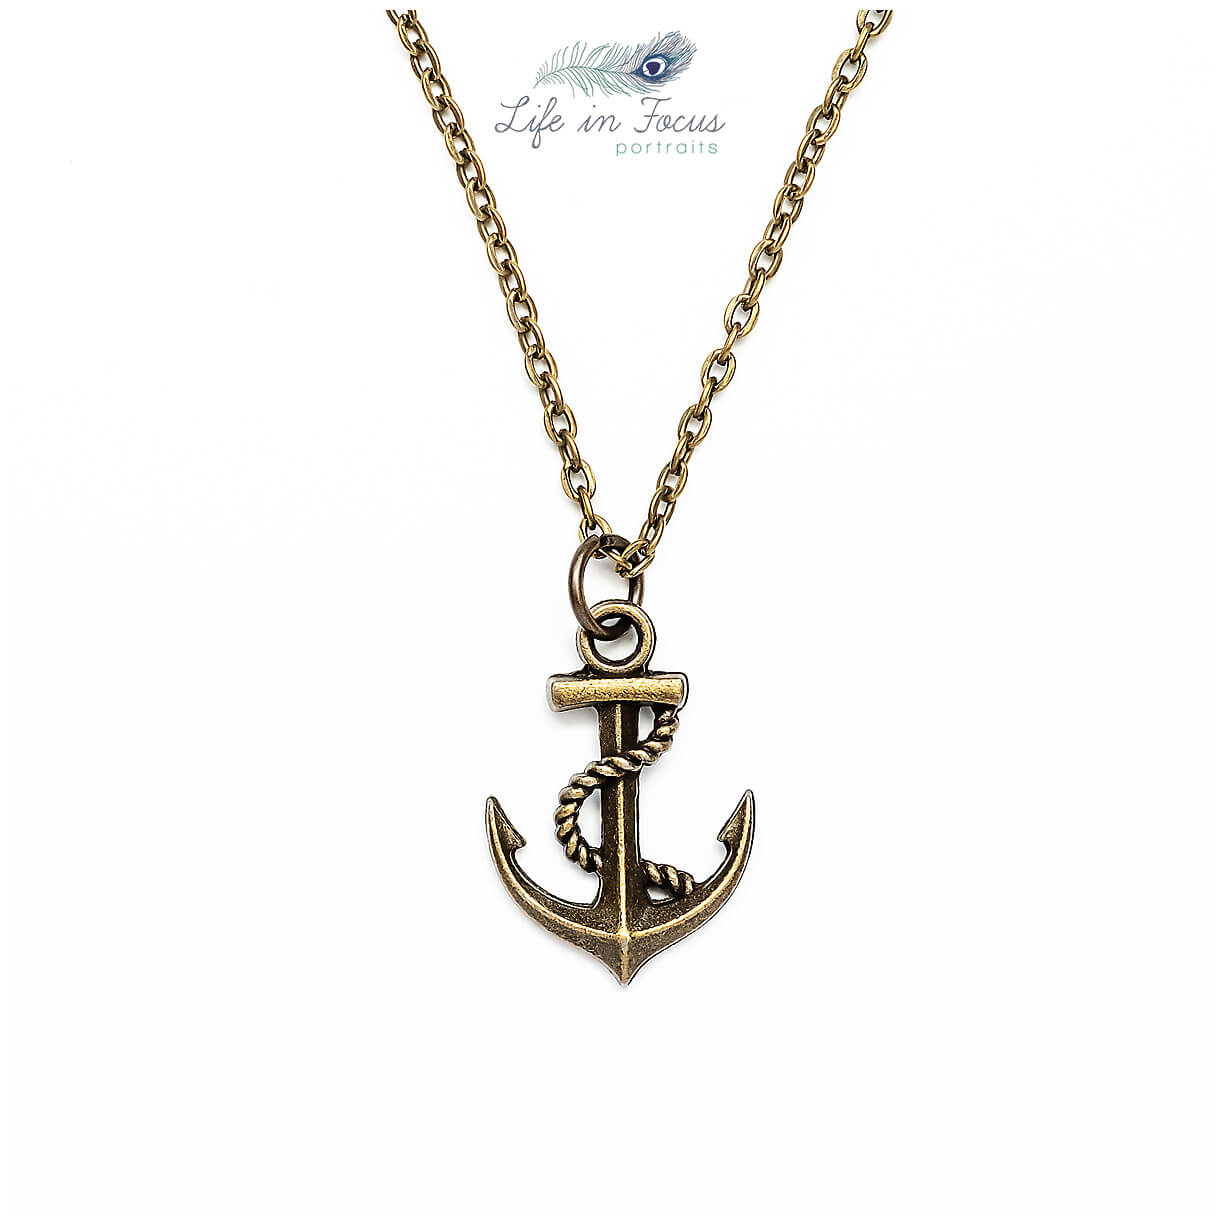 anchor necklace photo on white background for small business ecommerce website Life in Focus Portraits photography for small independent crafters Helensburgh artisans